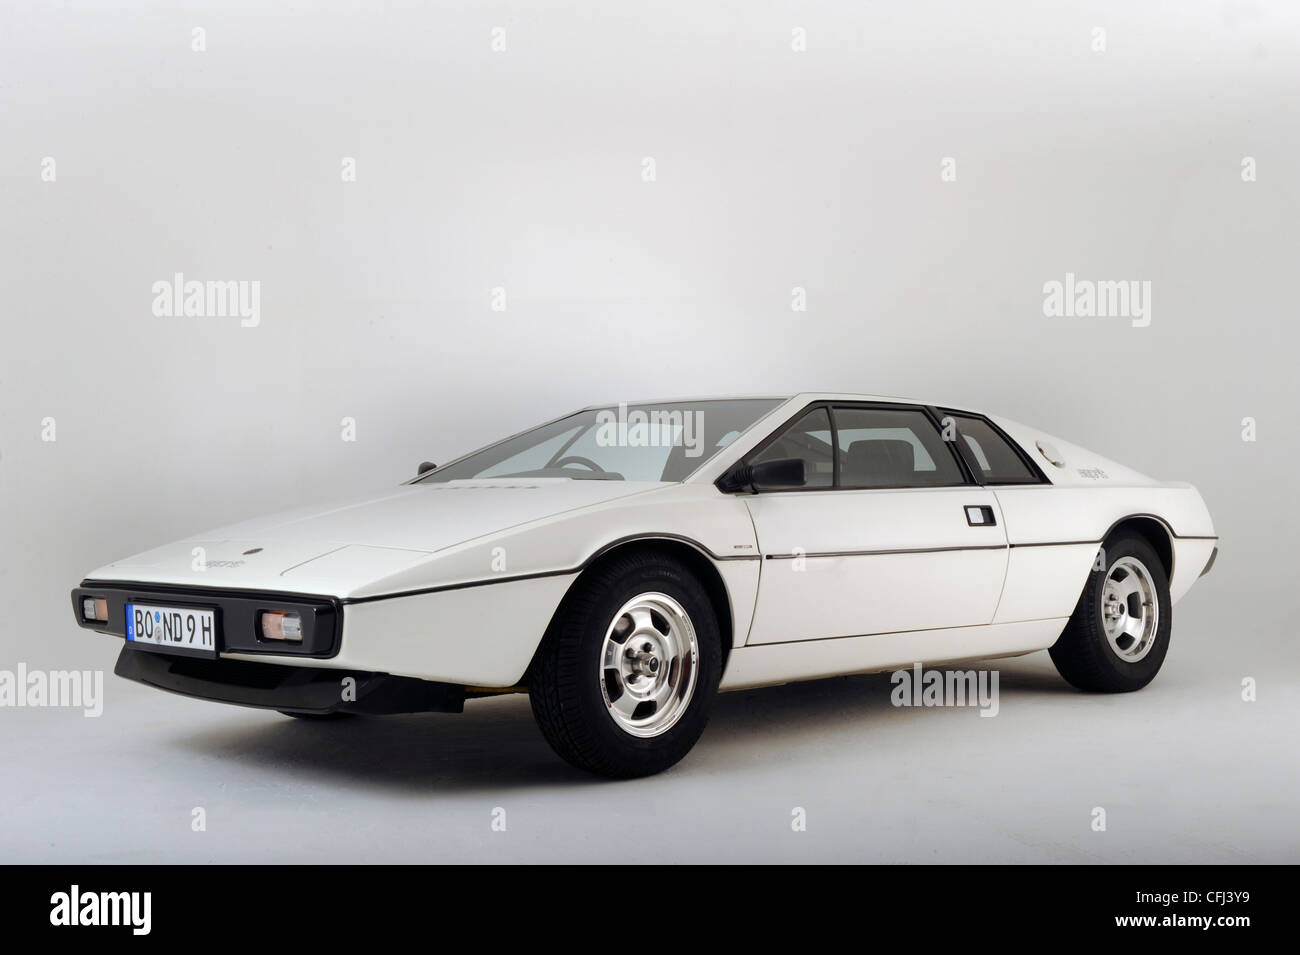 1977 Lotus Esprit from the James Bond film The Spy Who Loved Me - Stock Image